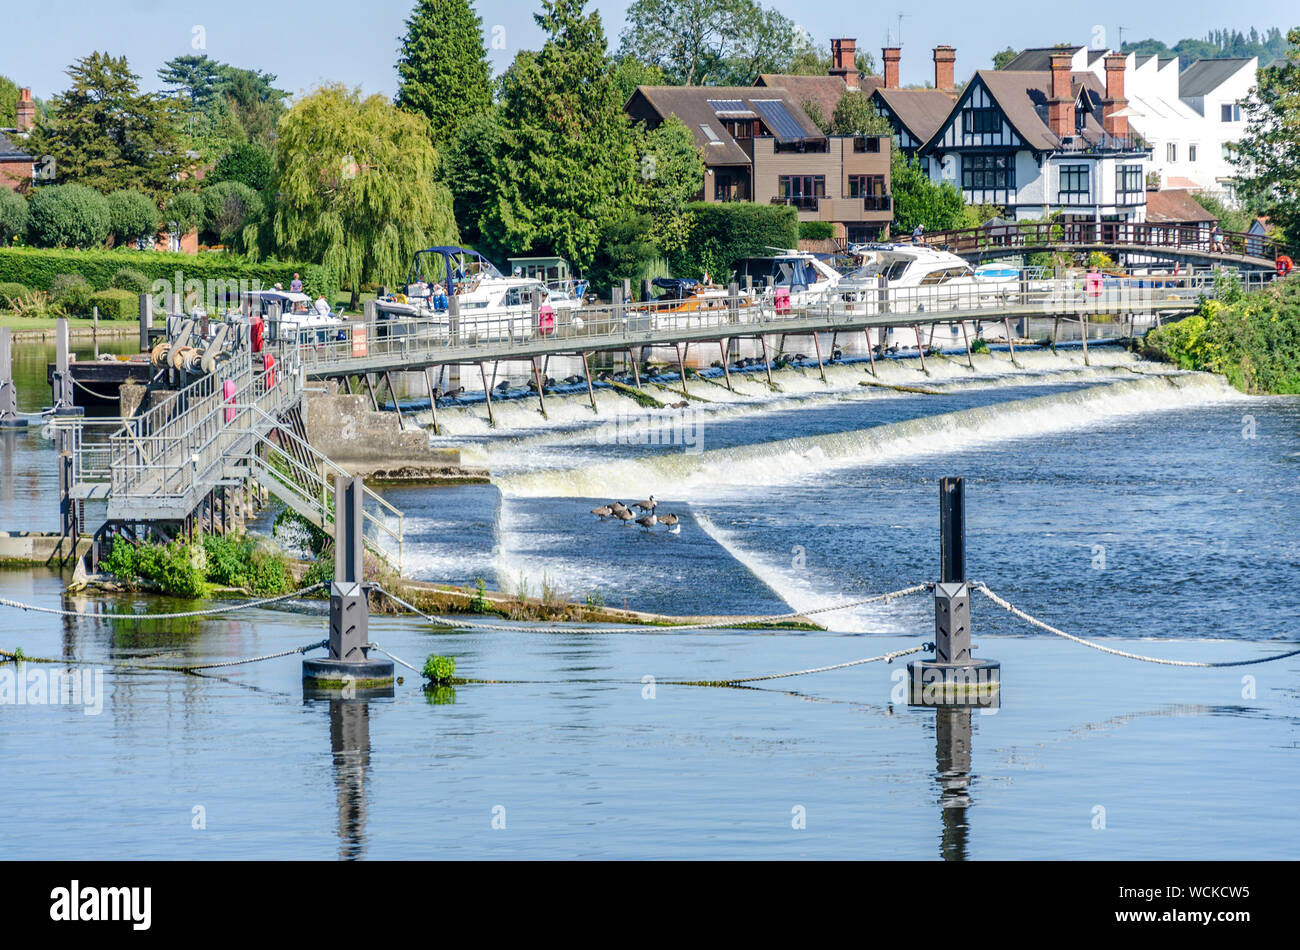 A view of the weir on The River Thames at Marlow in Buckinghamshire, UK Stock Photo